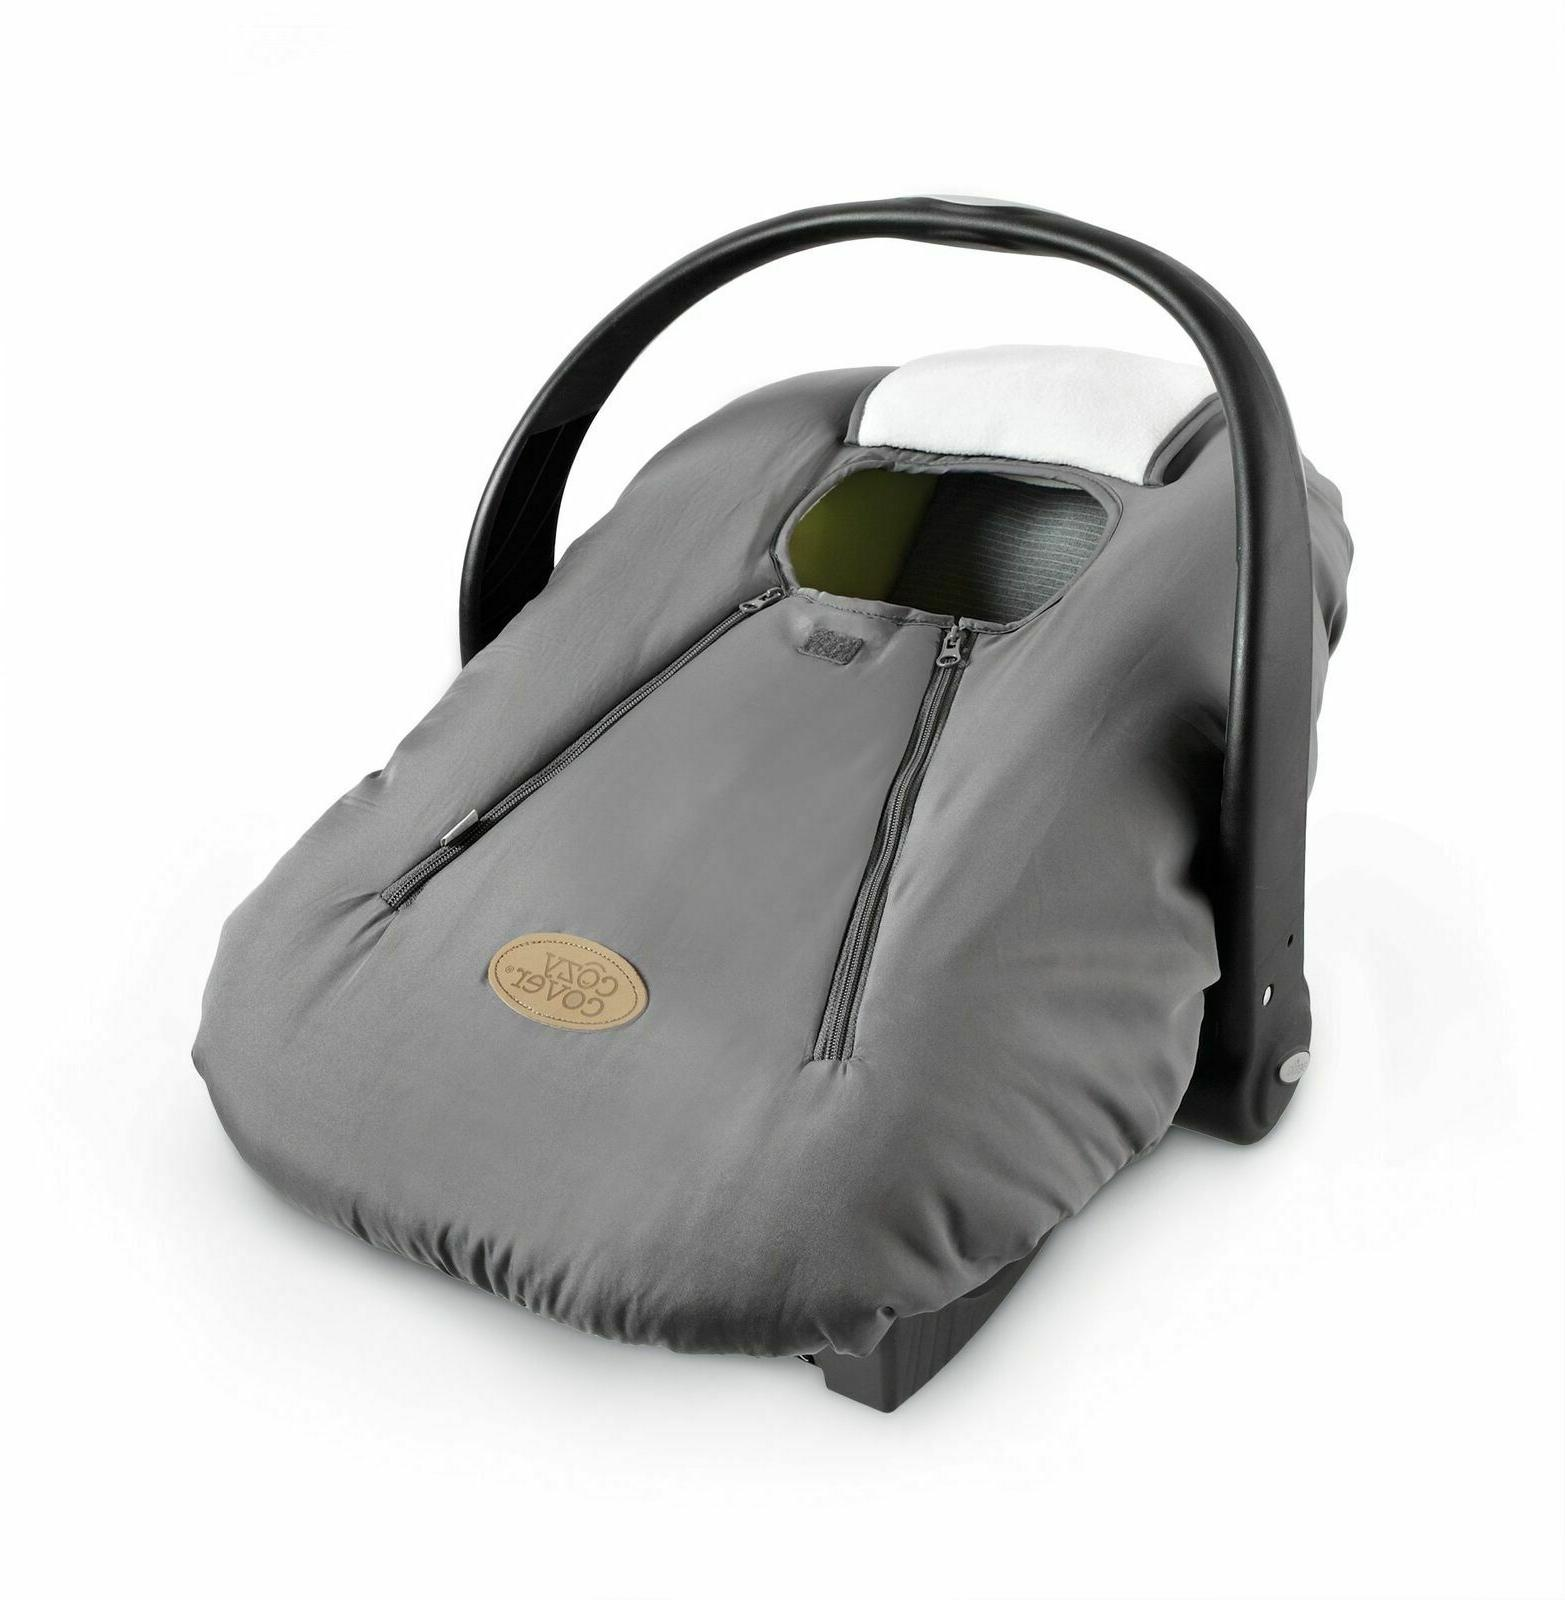 New Cozy Carrier Secure Car Seat Color